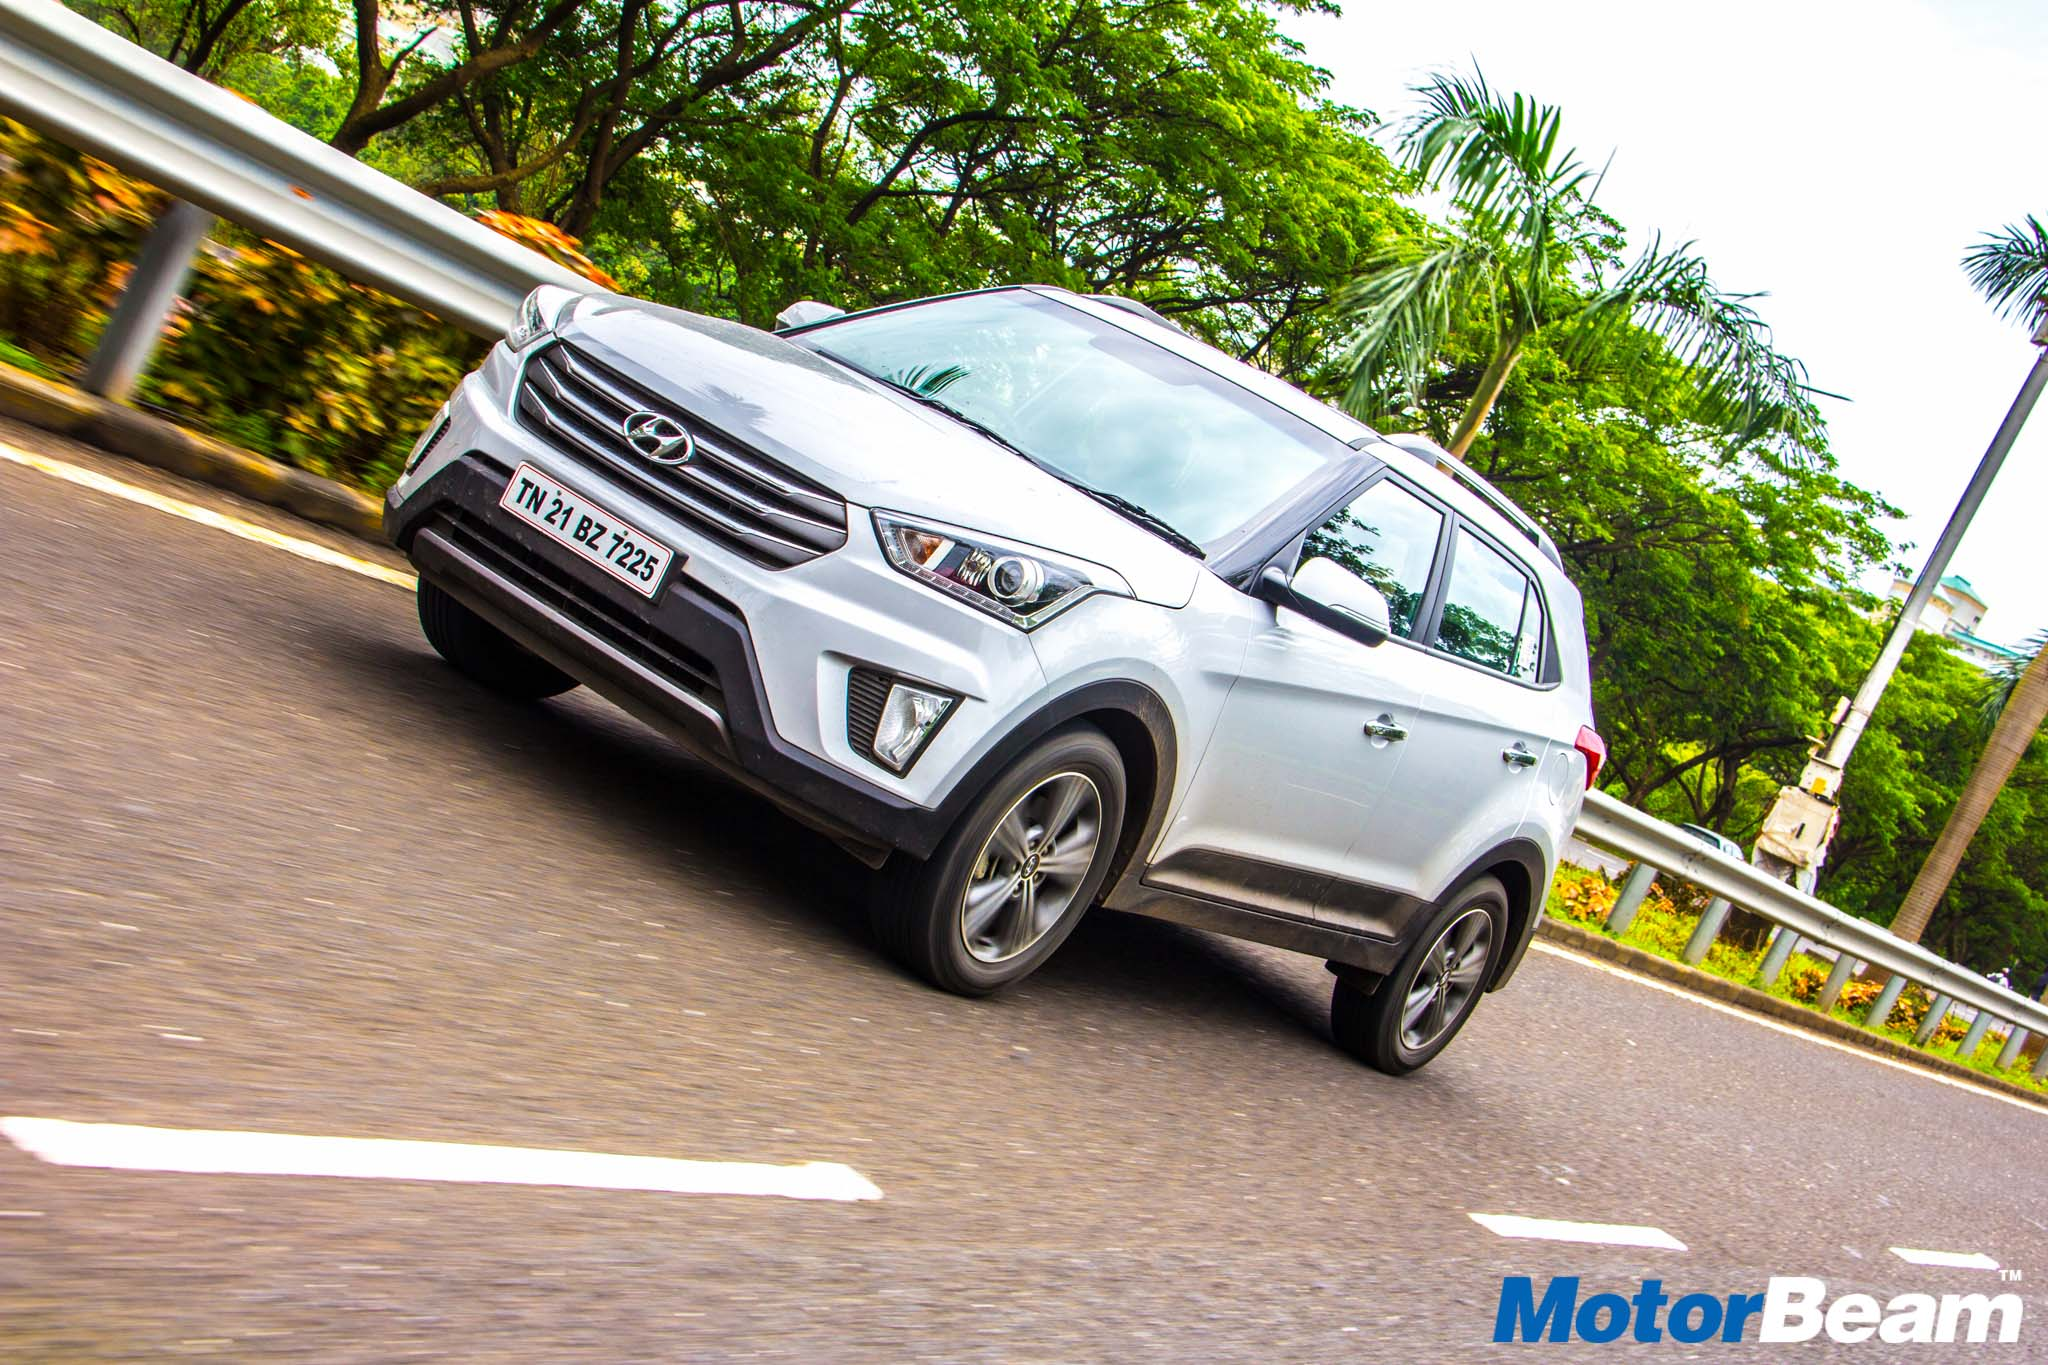 Hyundai Creta Petrol Automatic Test Drive Review